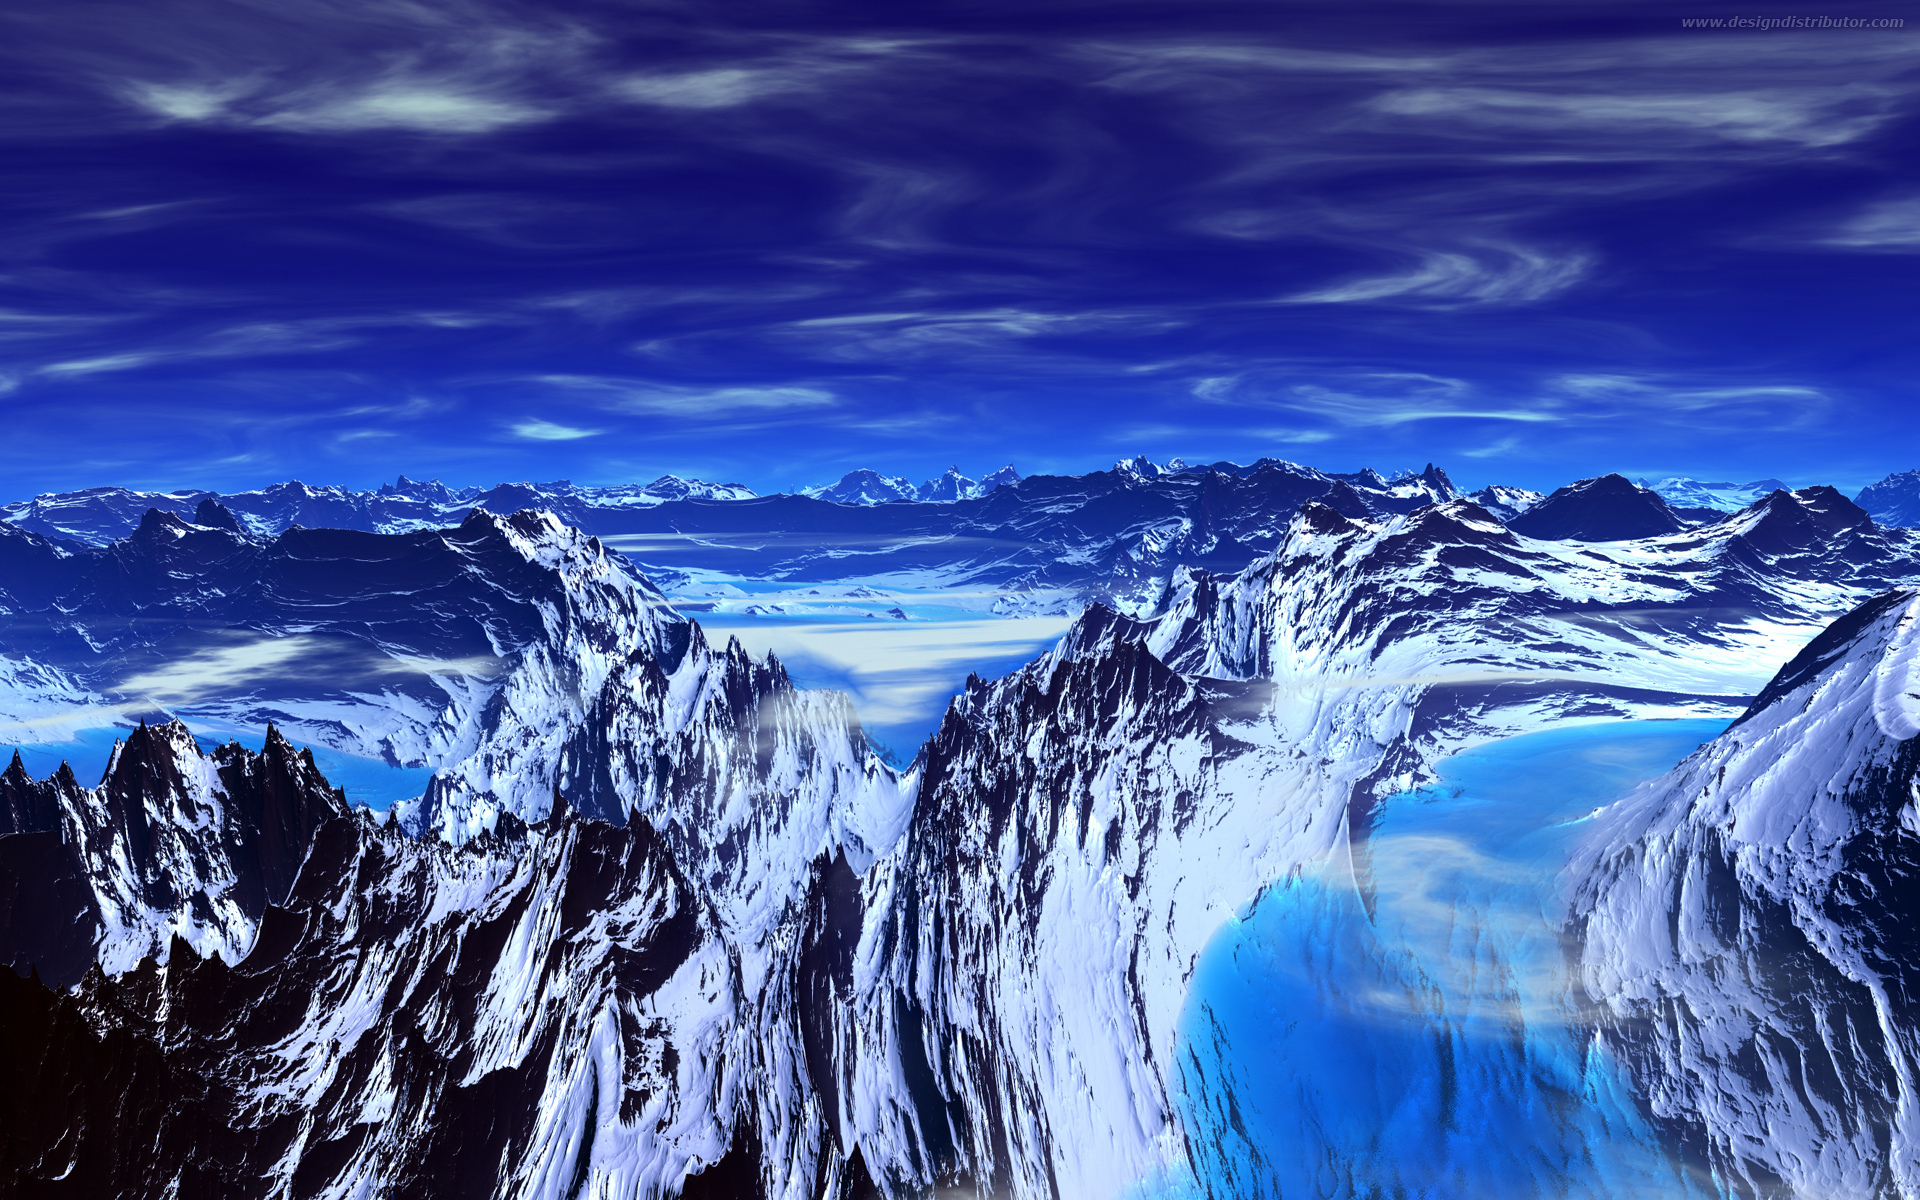 Nature Full HD Wallpaper - National Geographic Wallpaper (7822846 ...